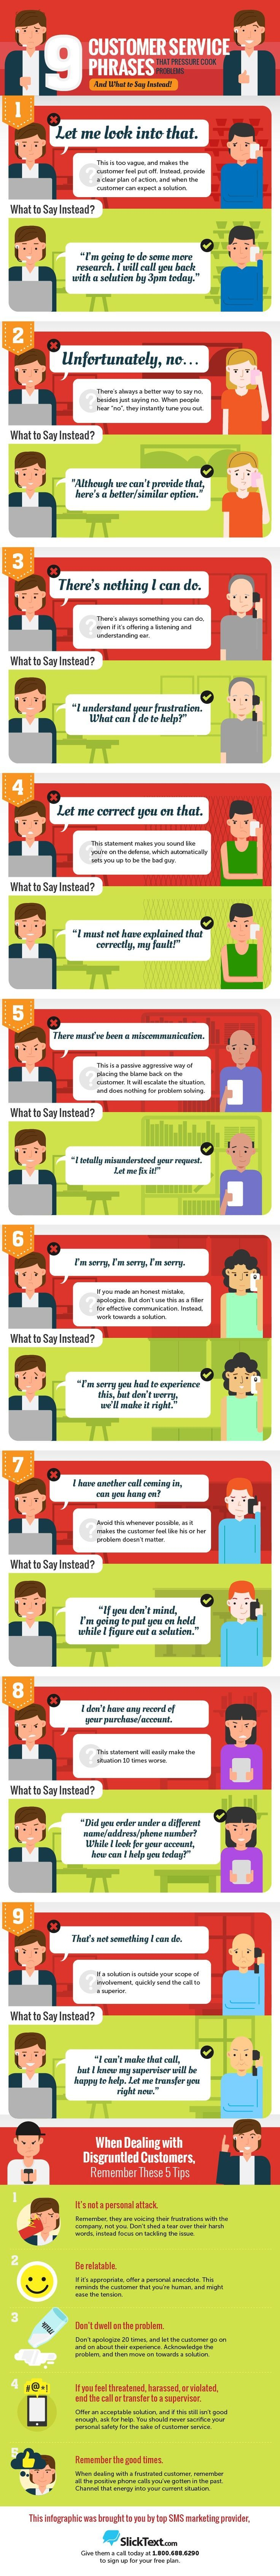 8 best phone images on pinterest phone business and cloud based 9 deadly customer service phrases to avoid what to say instead infographic fandeluxe